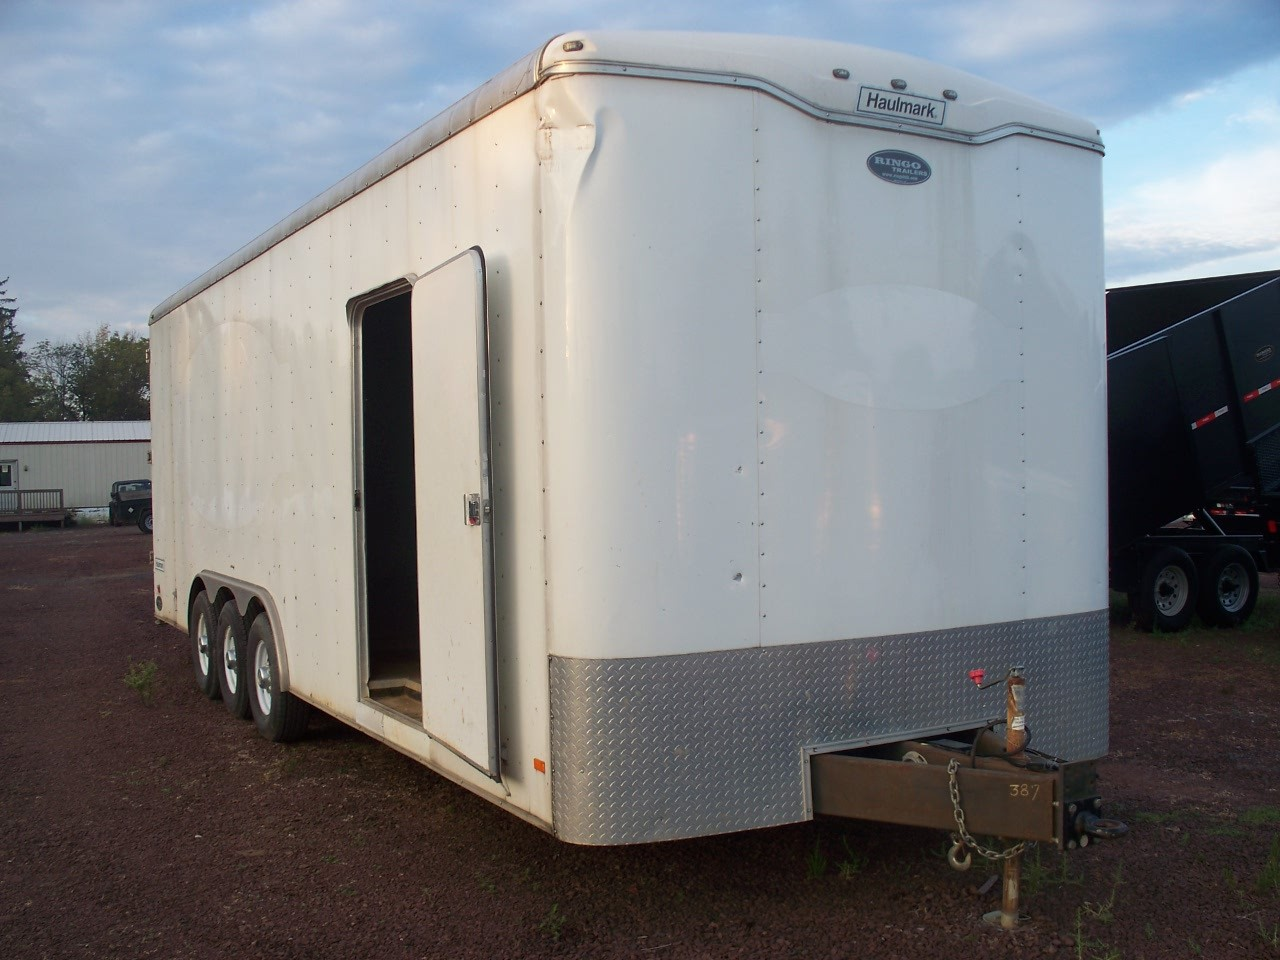 USED 2014 Haulmark 26' Enclosed Trailer w/ Barn Doors